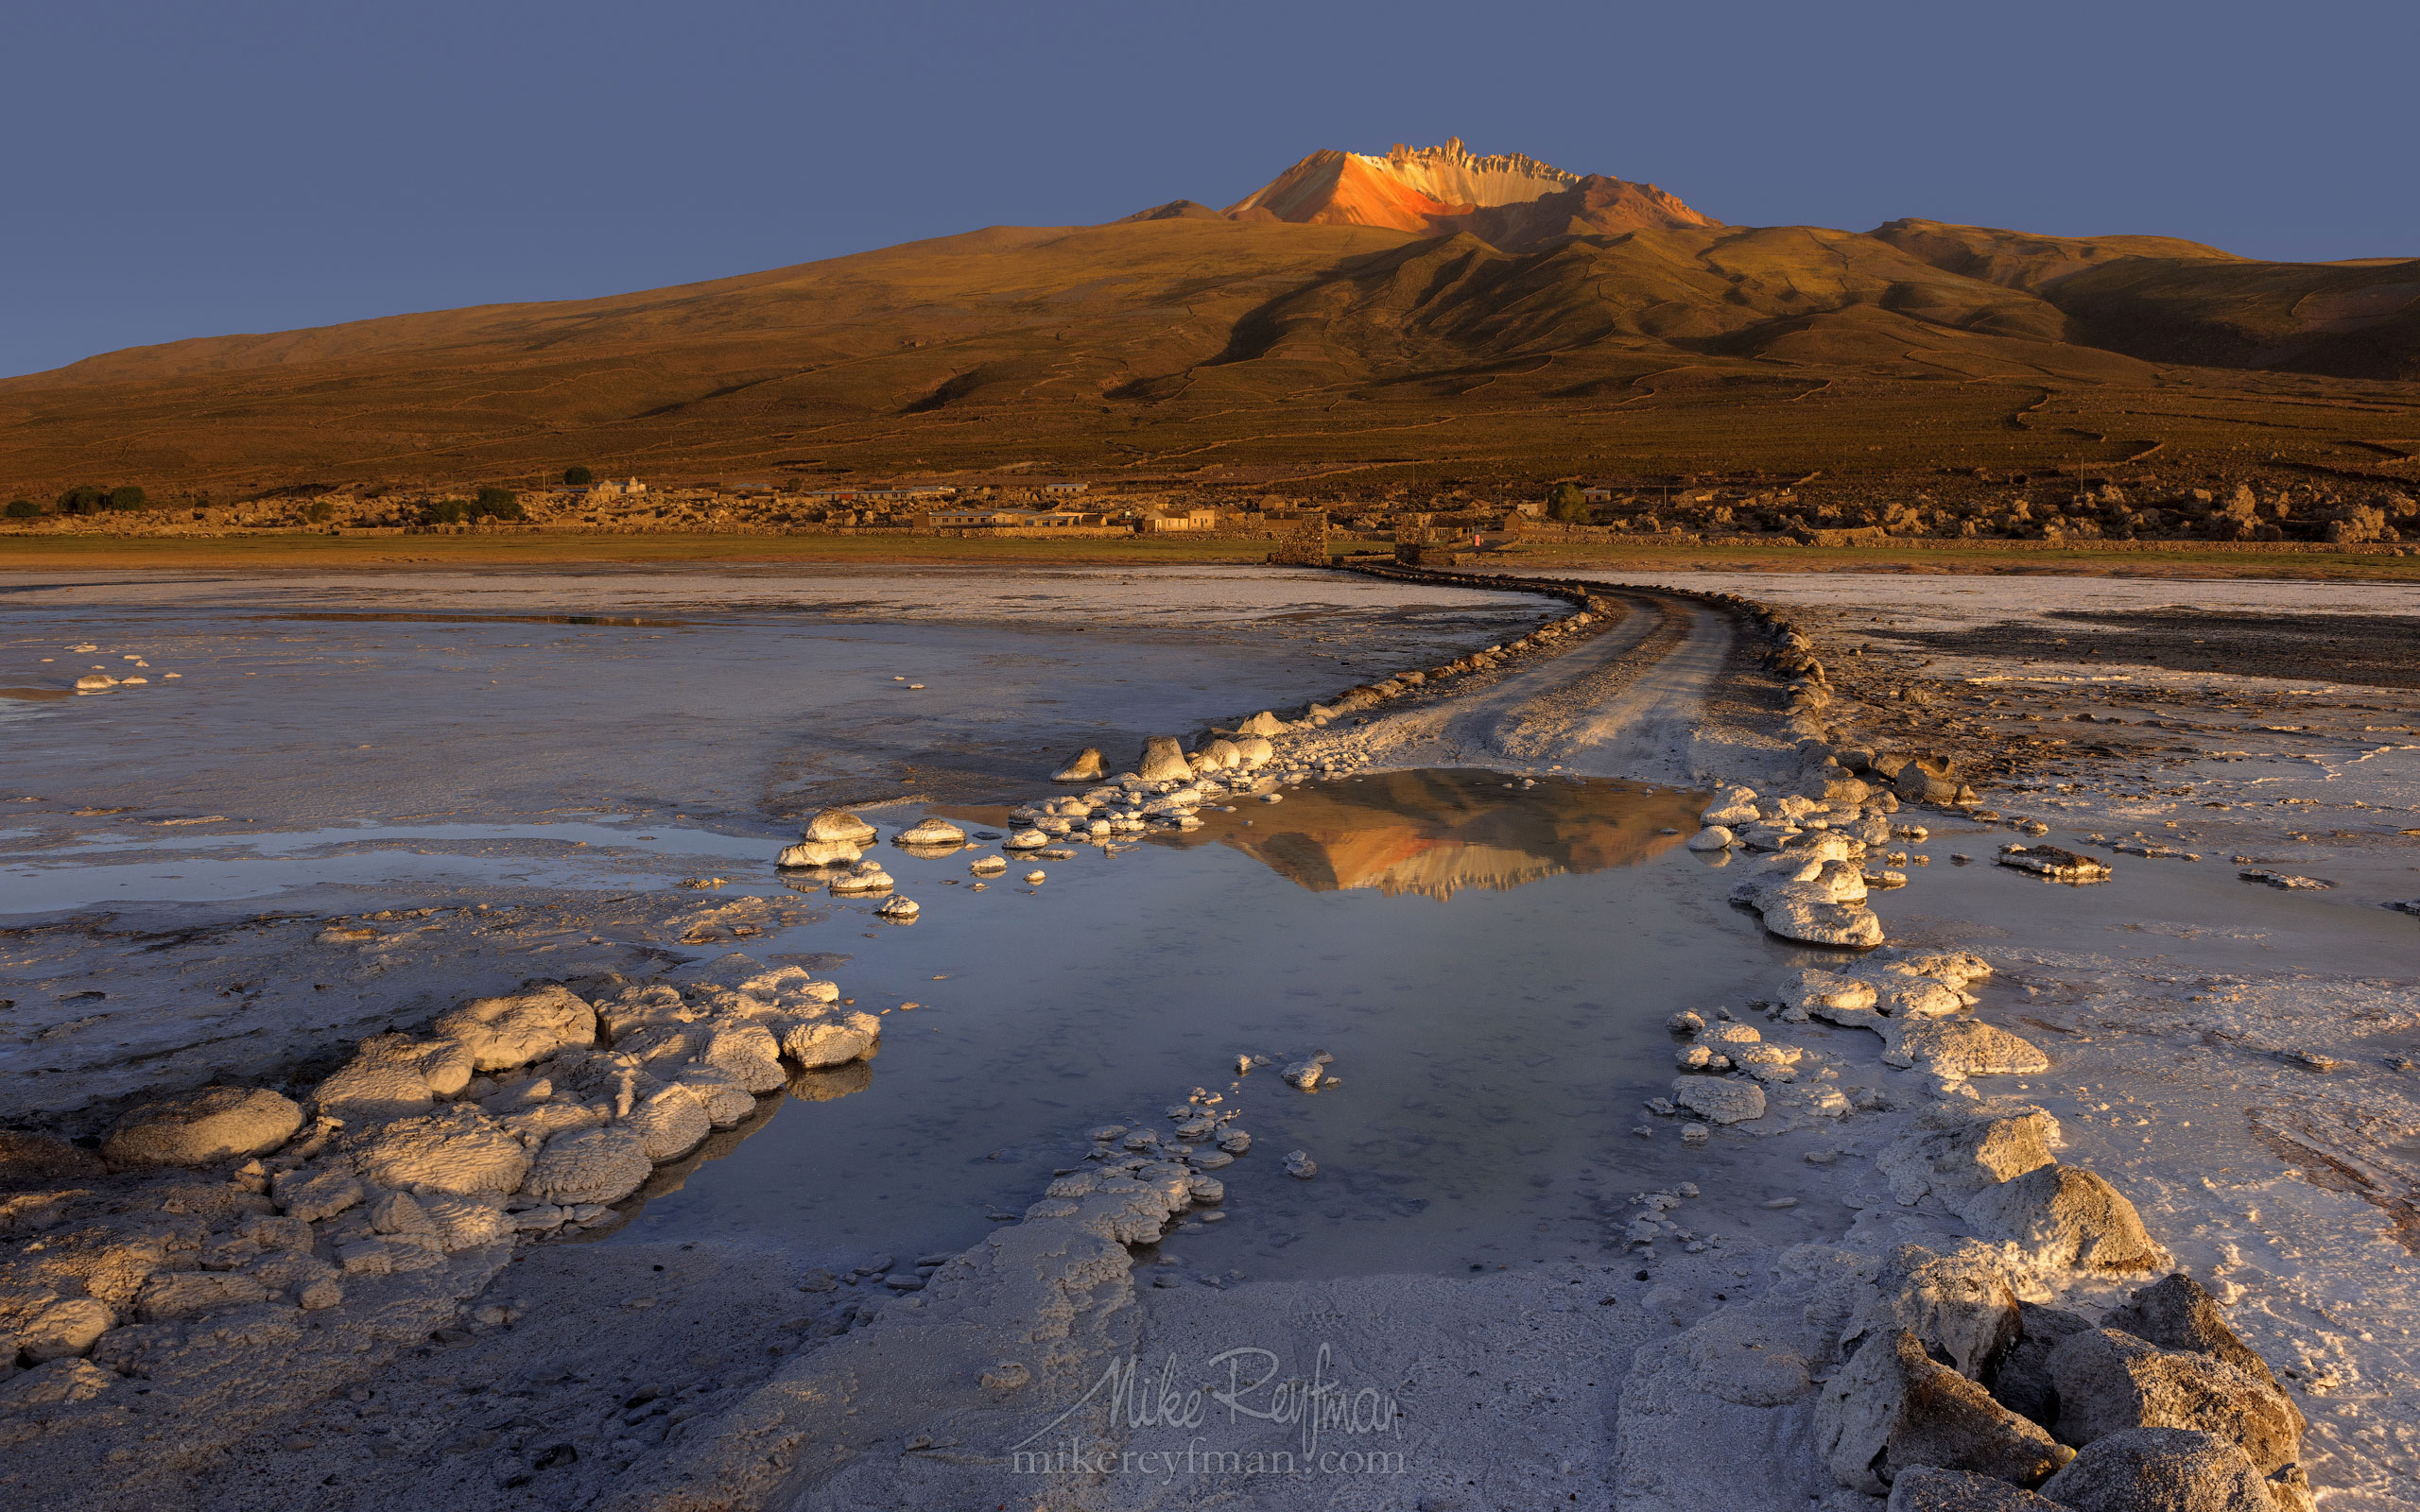 016037-AA1-AIR2448 - Atacama and Altiplano. The Driest Desert and The High Plain - Mike Reyfman Photography